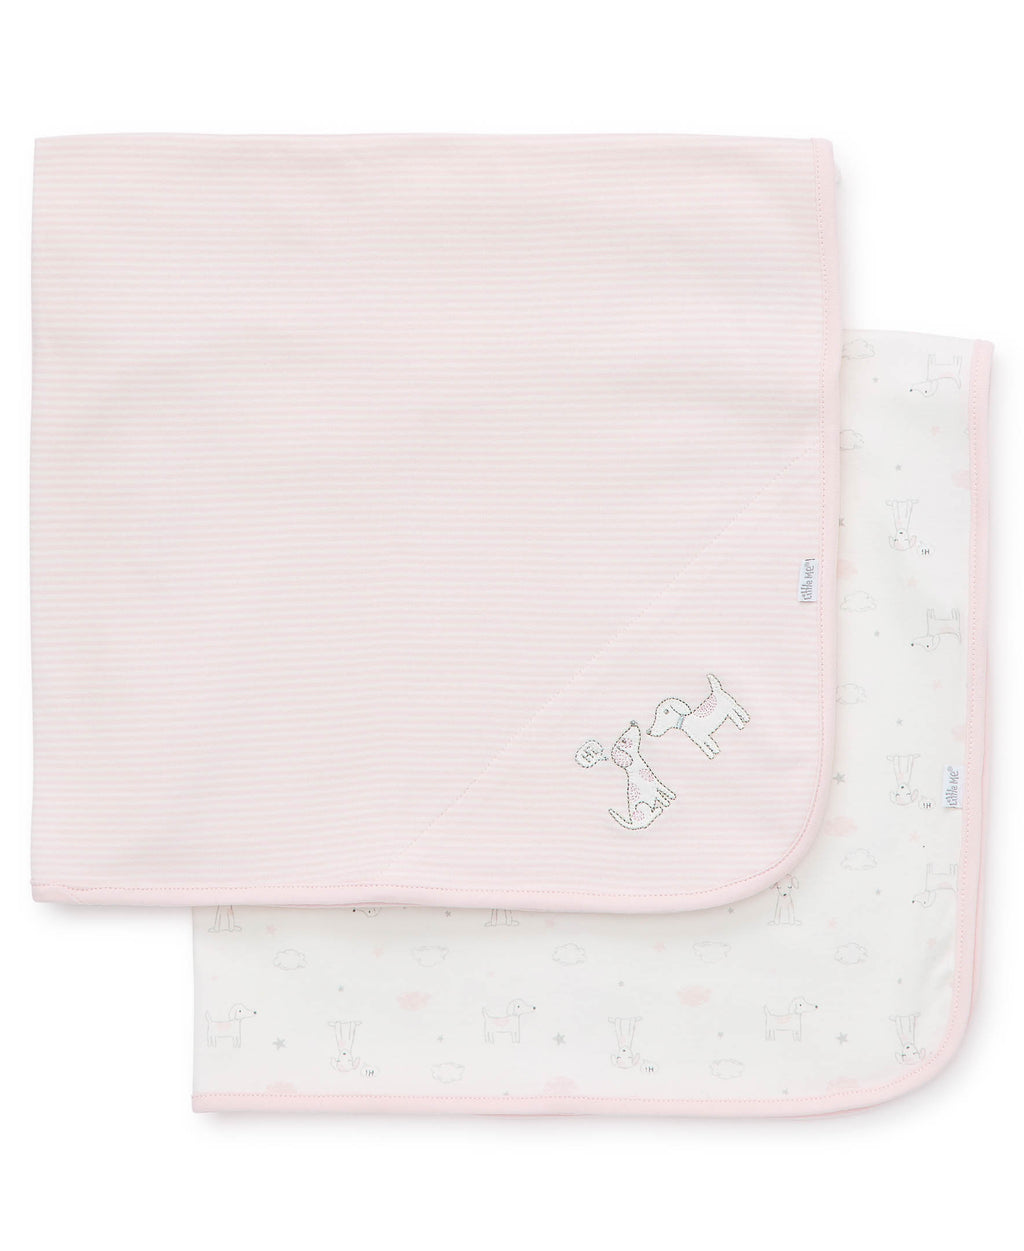 Puppy Love Receiving Blanket (2-Pack)